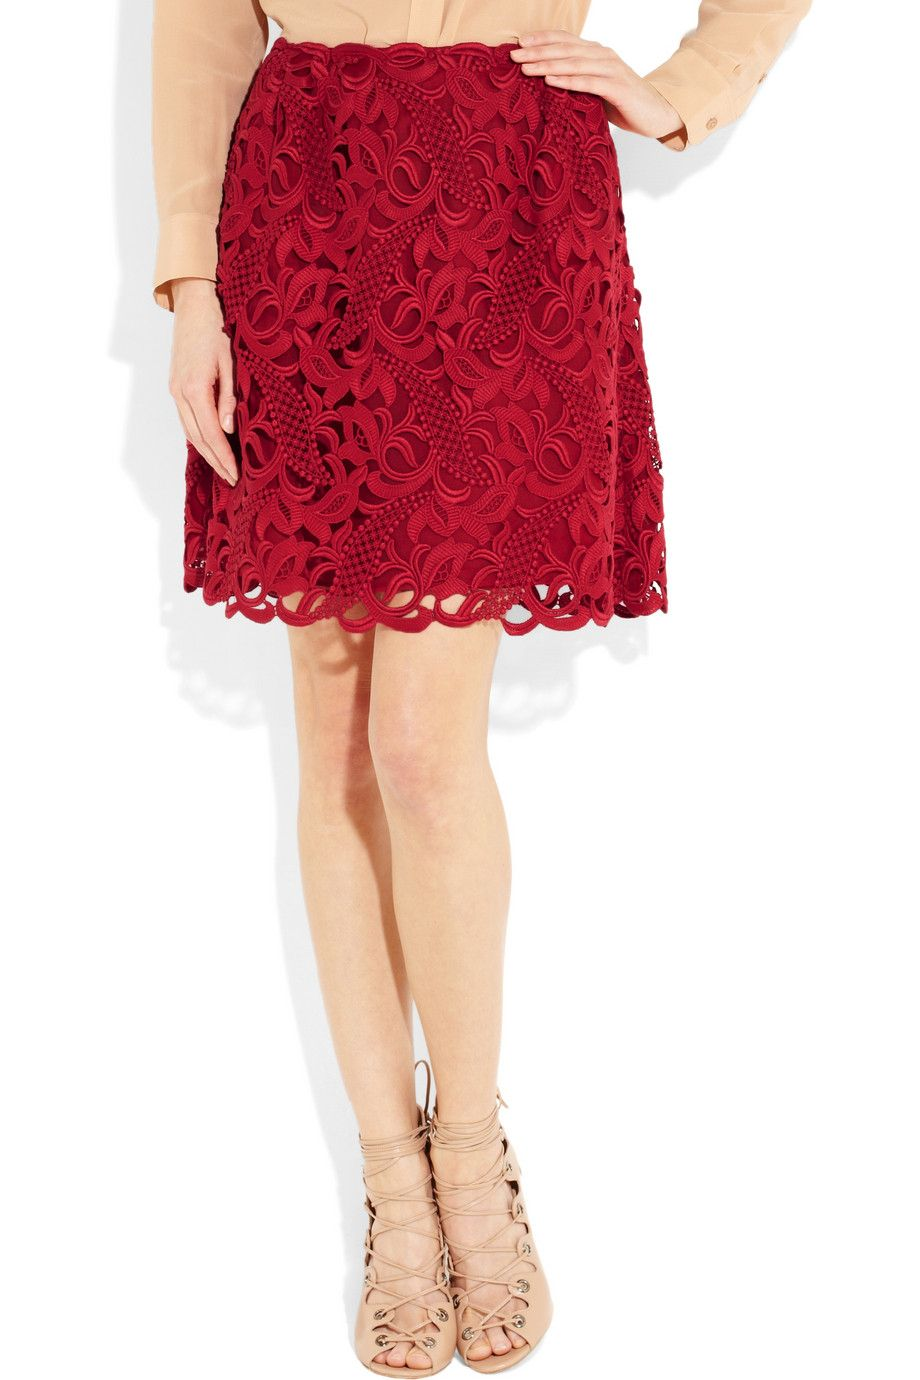 This skirt embodies the two things Valentino is known for: Lace & incredible saturated reds